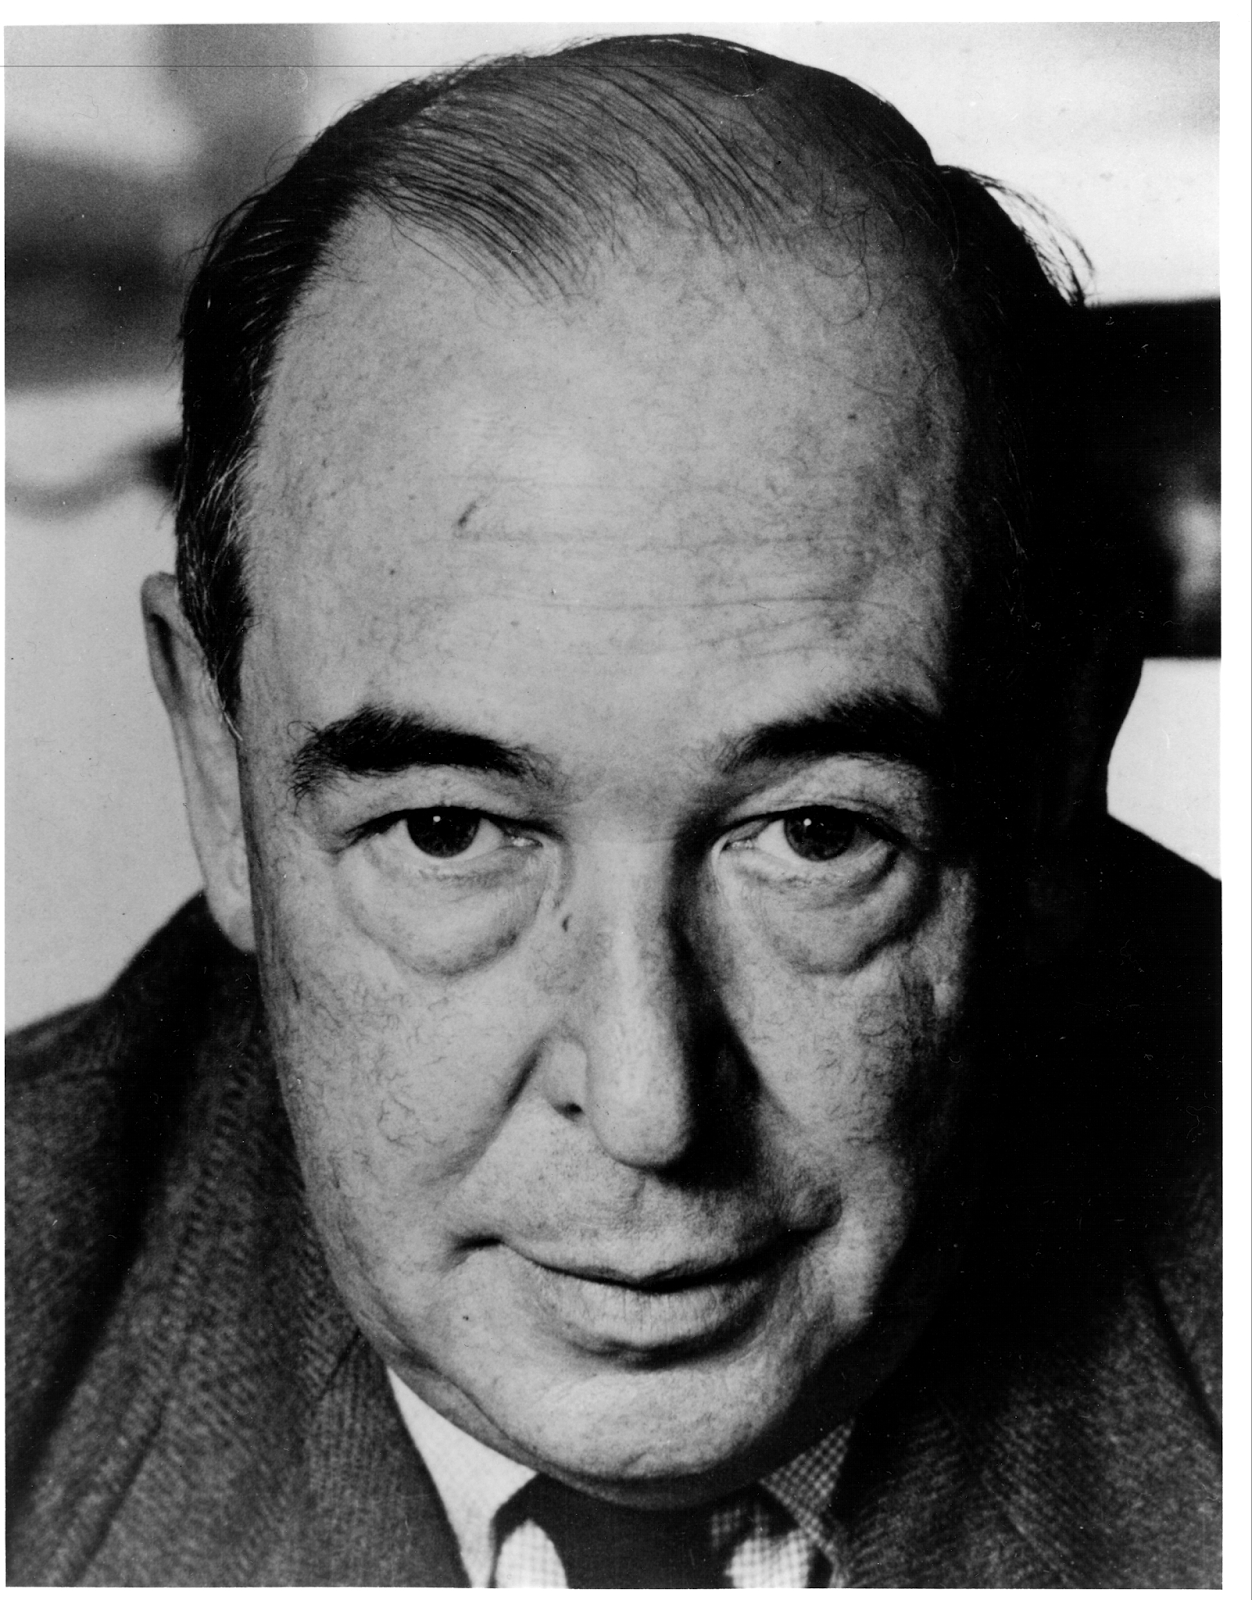 cs lewis selected essays Additional information and websites for cs lewis  a selection of essays including lewis  2015 (biography of joy davidman, wife of cs lewis) selected.